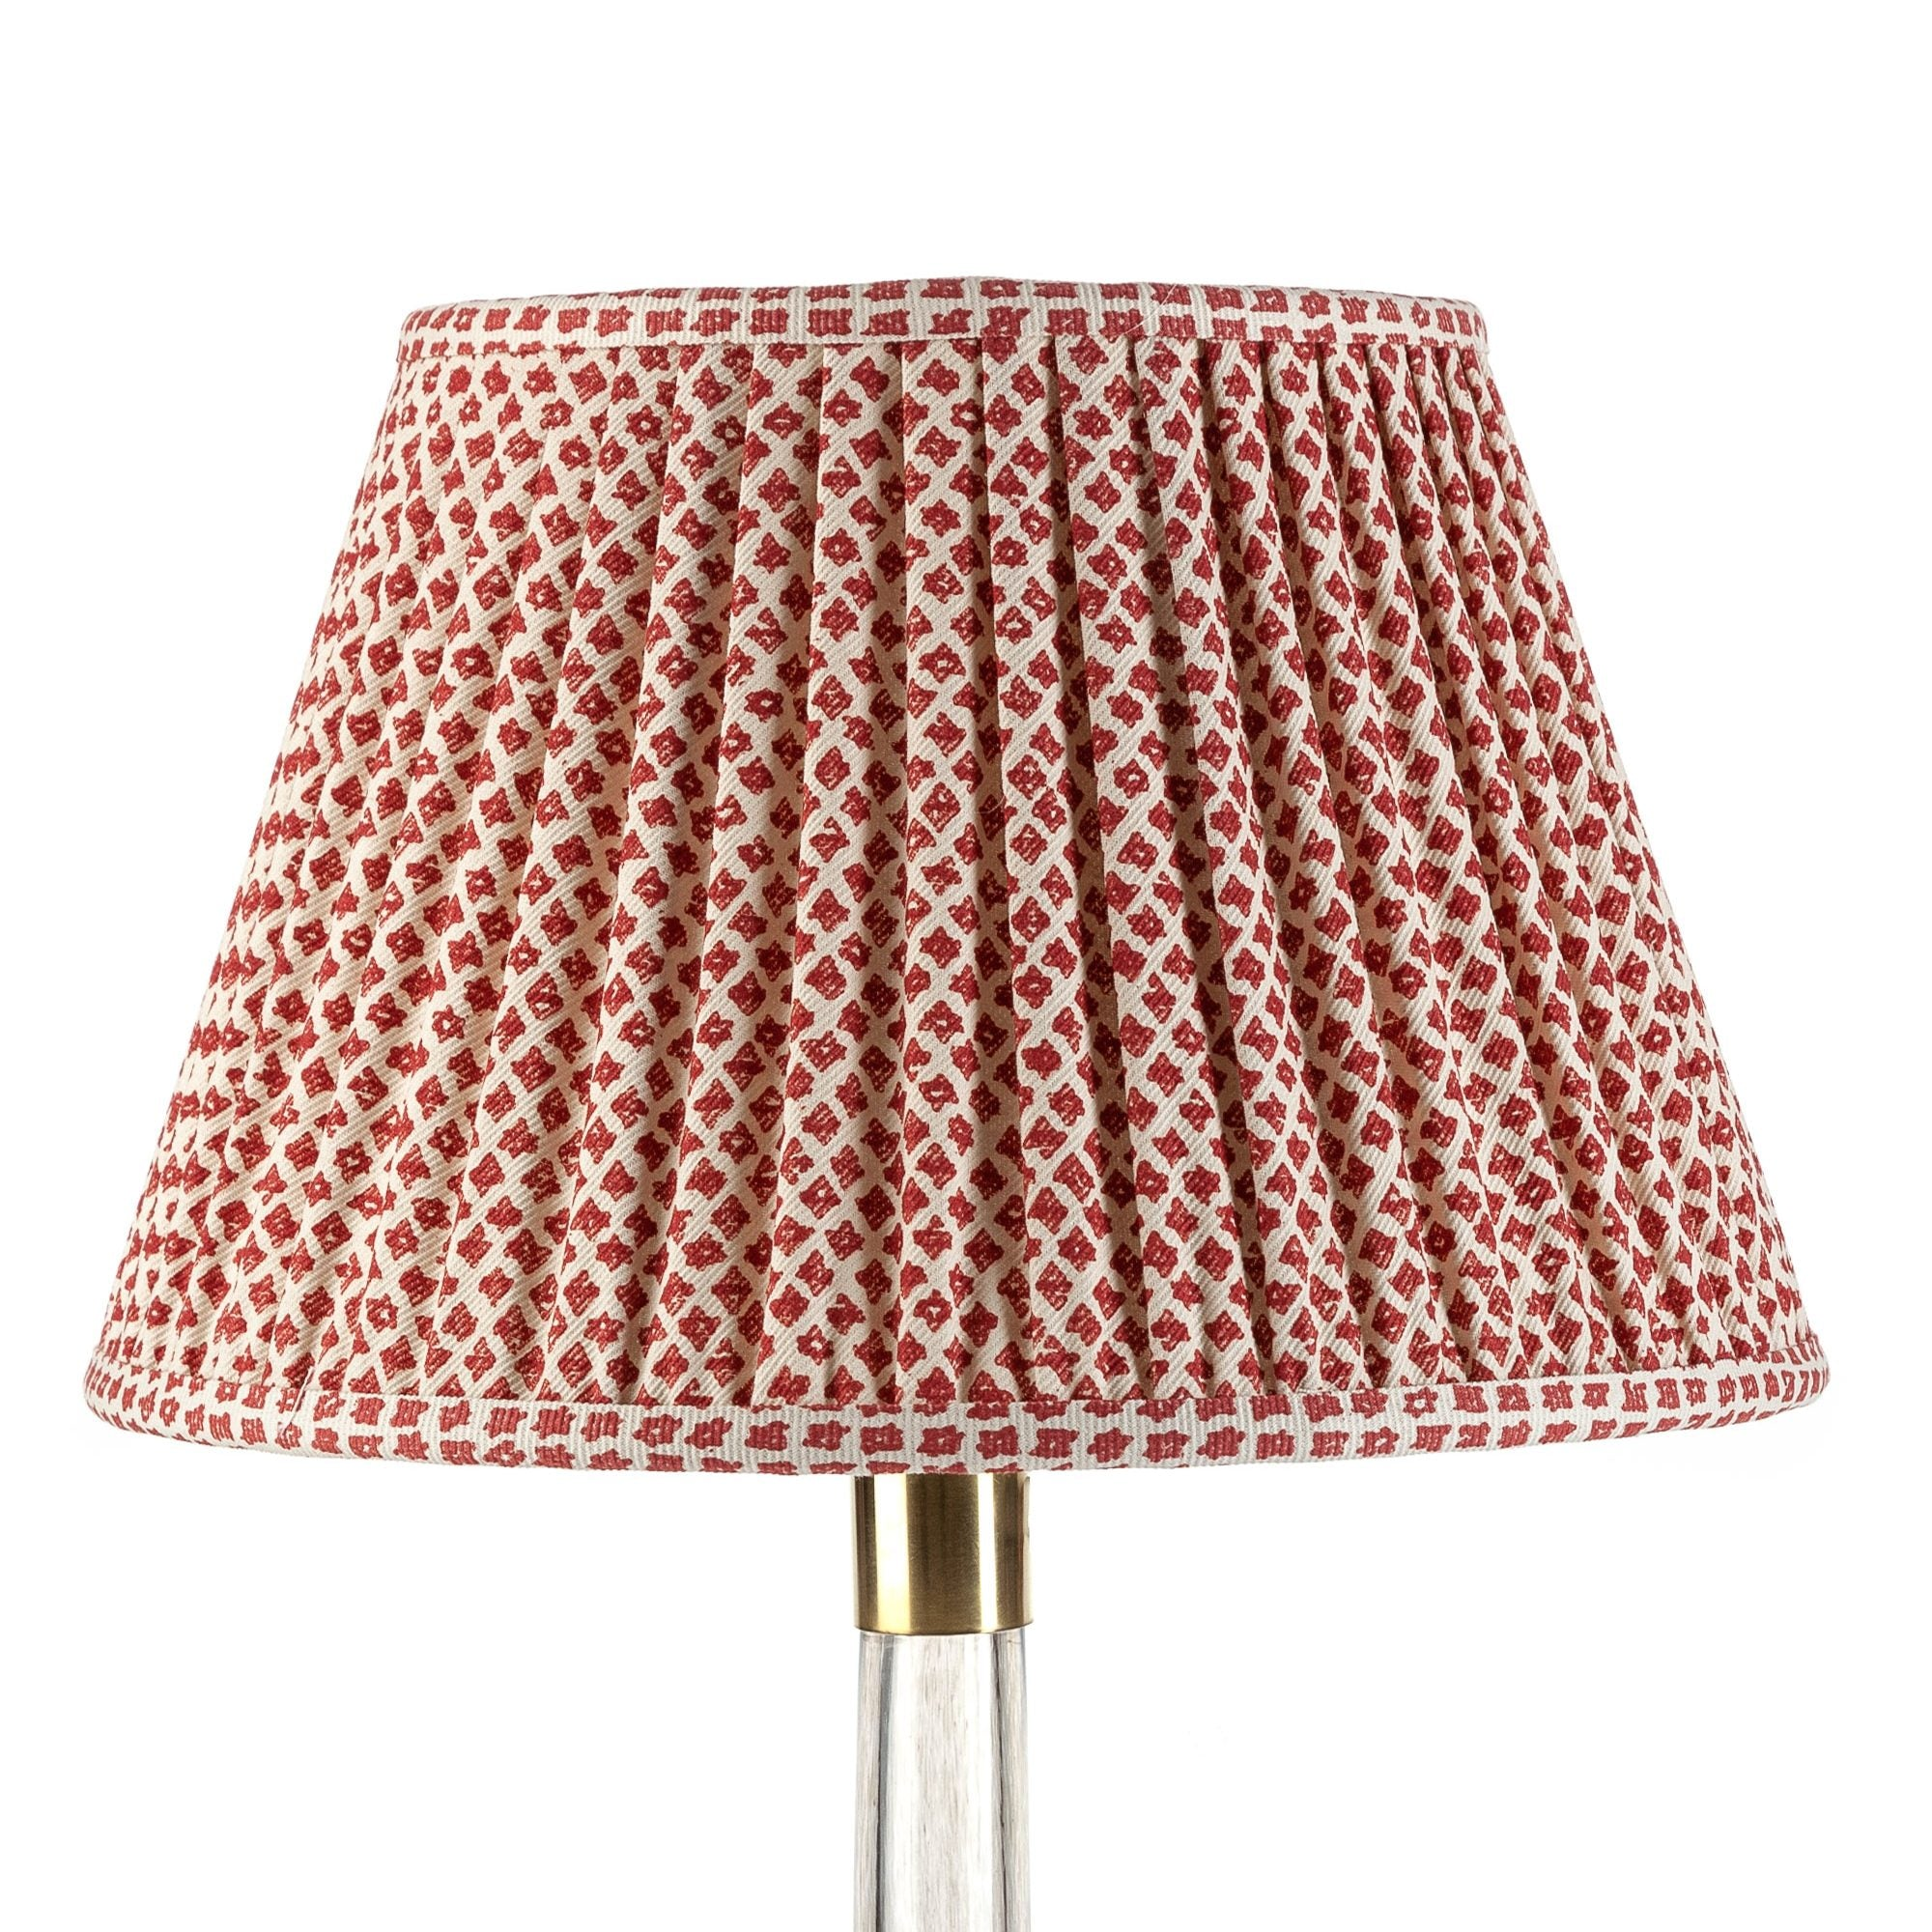 Fermoie Lampshade in Red Marden